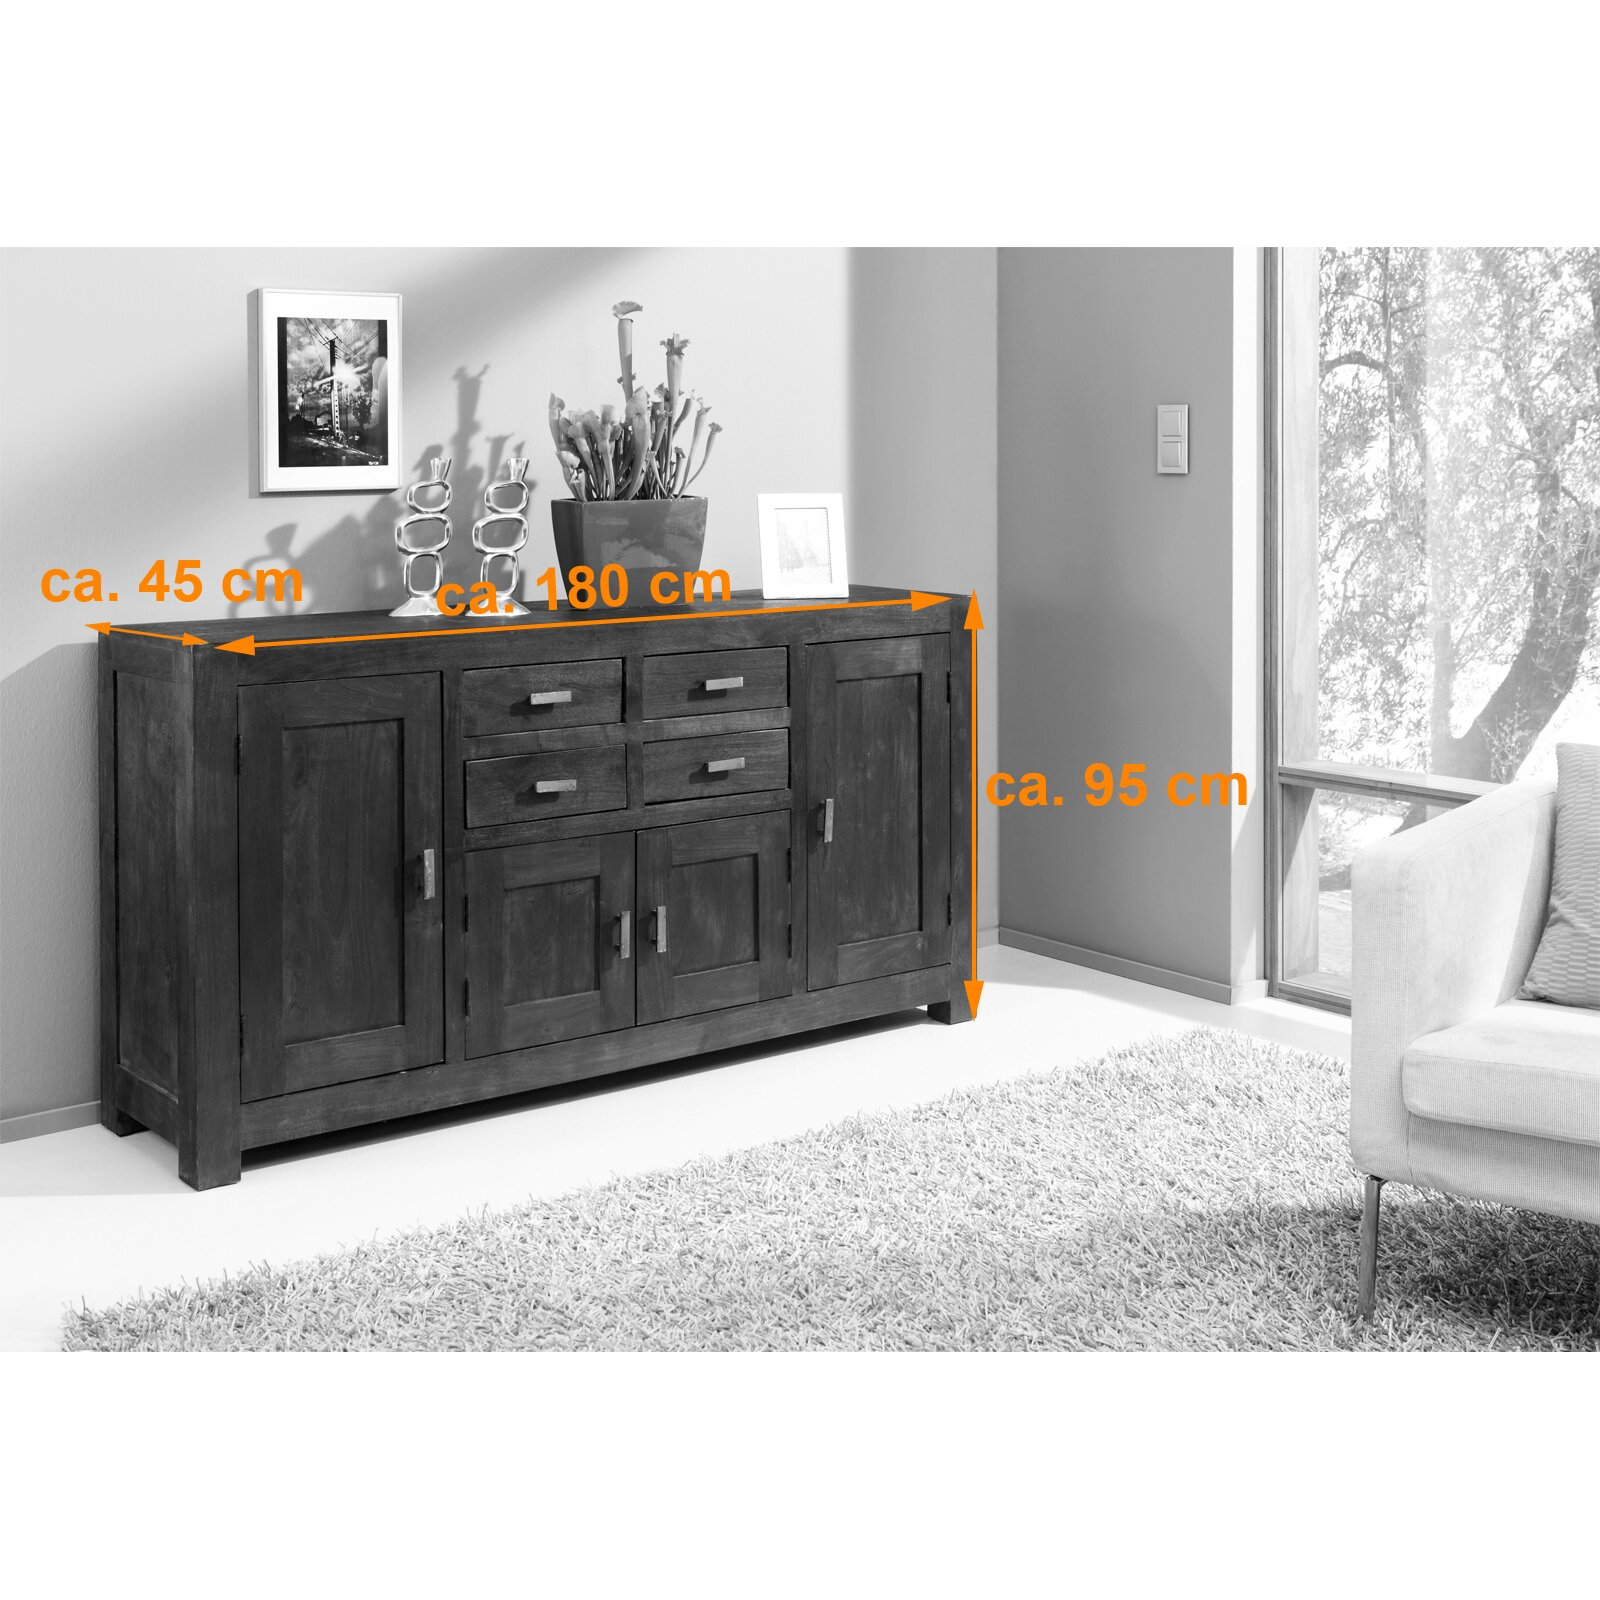 sam stil art m bel gmbh sideboard tigris. Black Bedroom Furniture Sets. Home Design Ideas